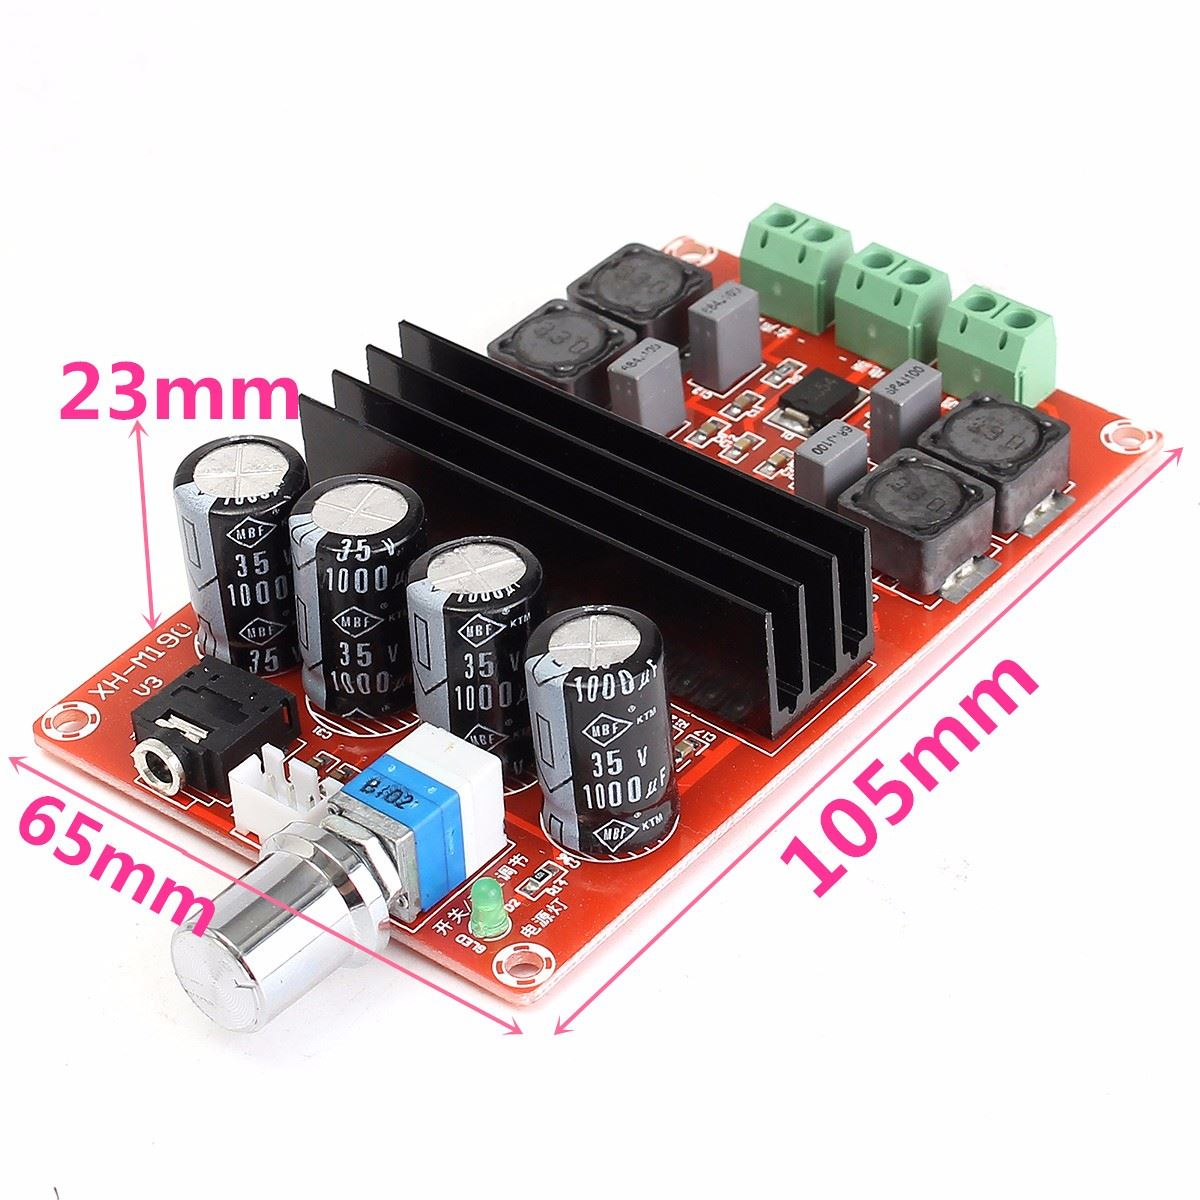 A Solar Powering Station For Arduino Type Yes If You Agree Amp Tag Diy Boost Converter With Mppt Charge Controller Images Frompo 100w 12v 24v Tpa3116d2 Dual Channel Digital Audio Amplifier Board High Efficiency